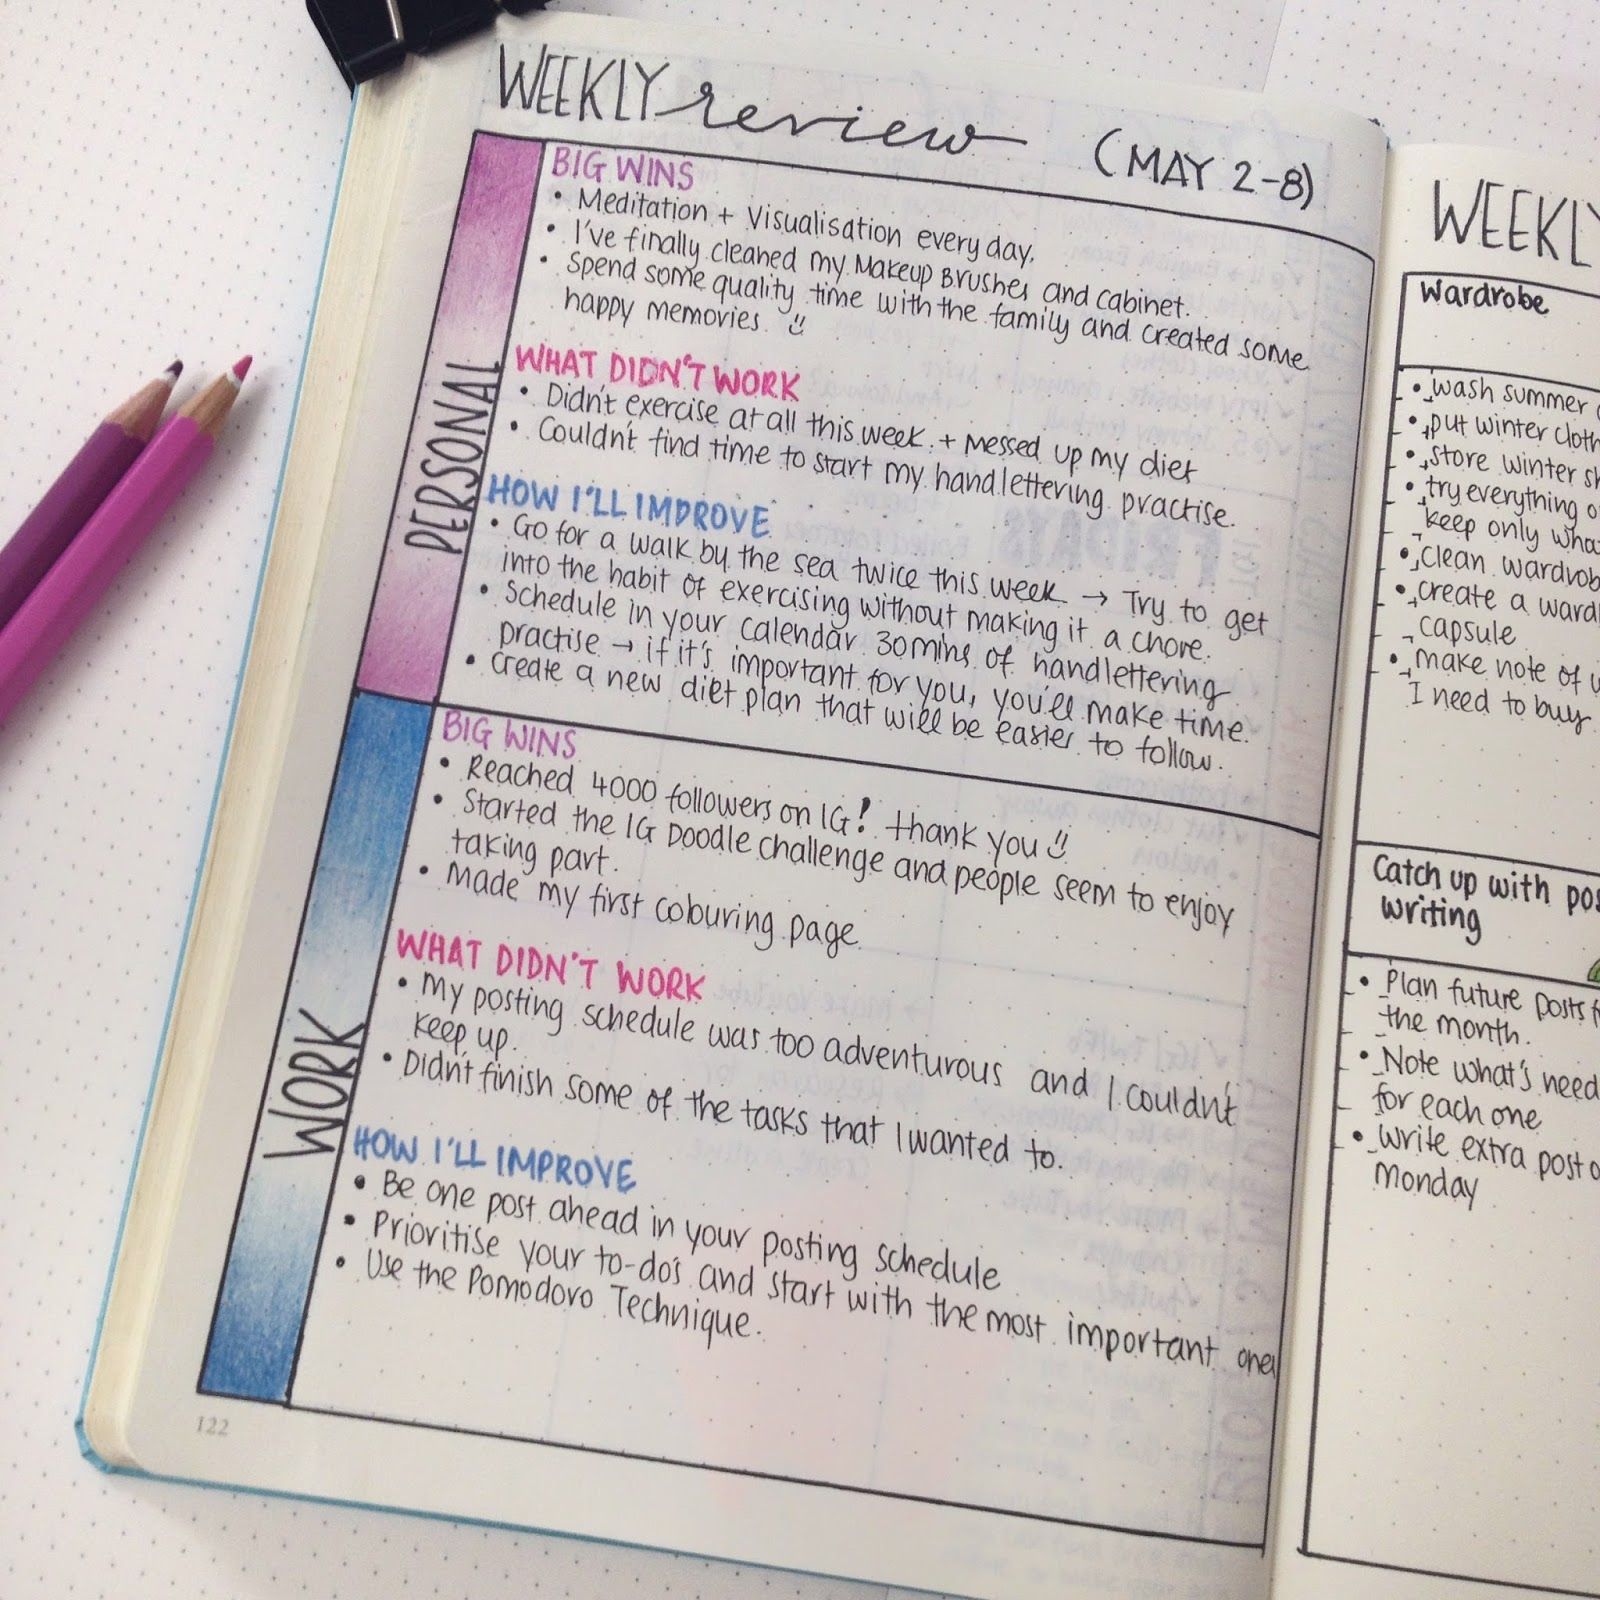 Sharing with you 7 things that I've learned during my first year of bullet journaling - www.chrisitna77star.co.uk